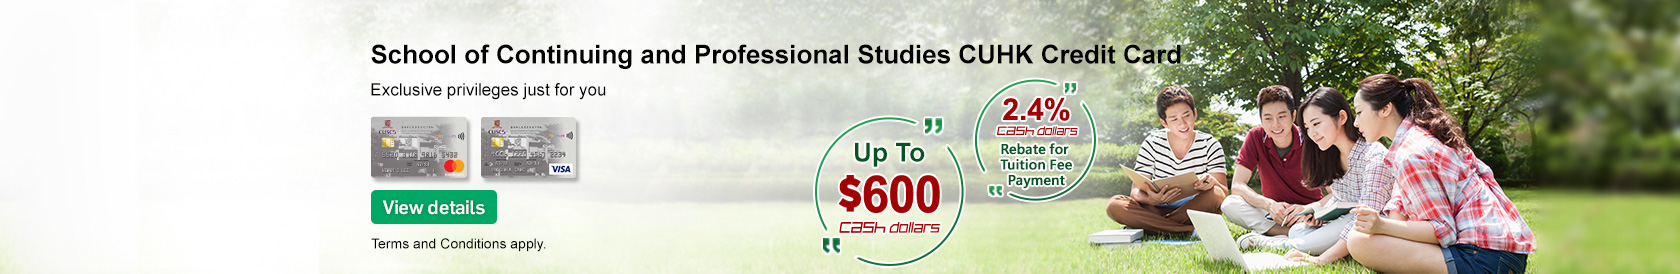 School of  Continuing and Professional Studies CUHK Credit Card